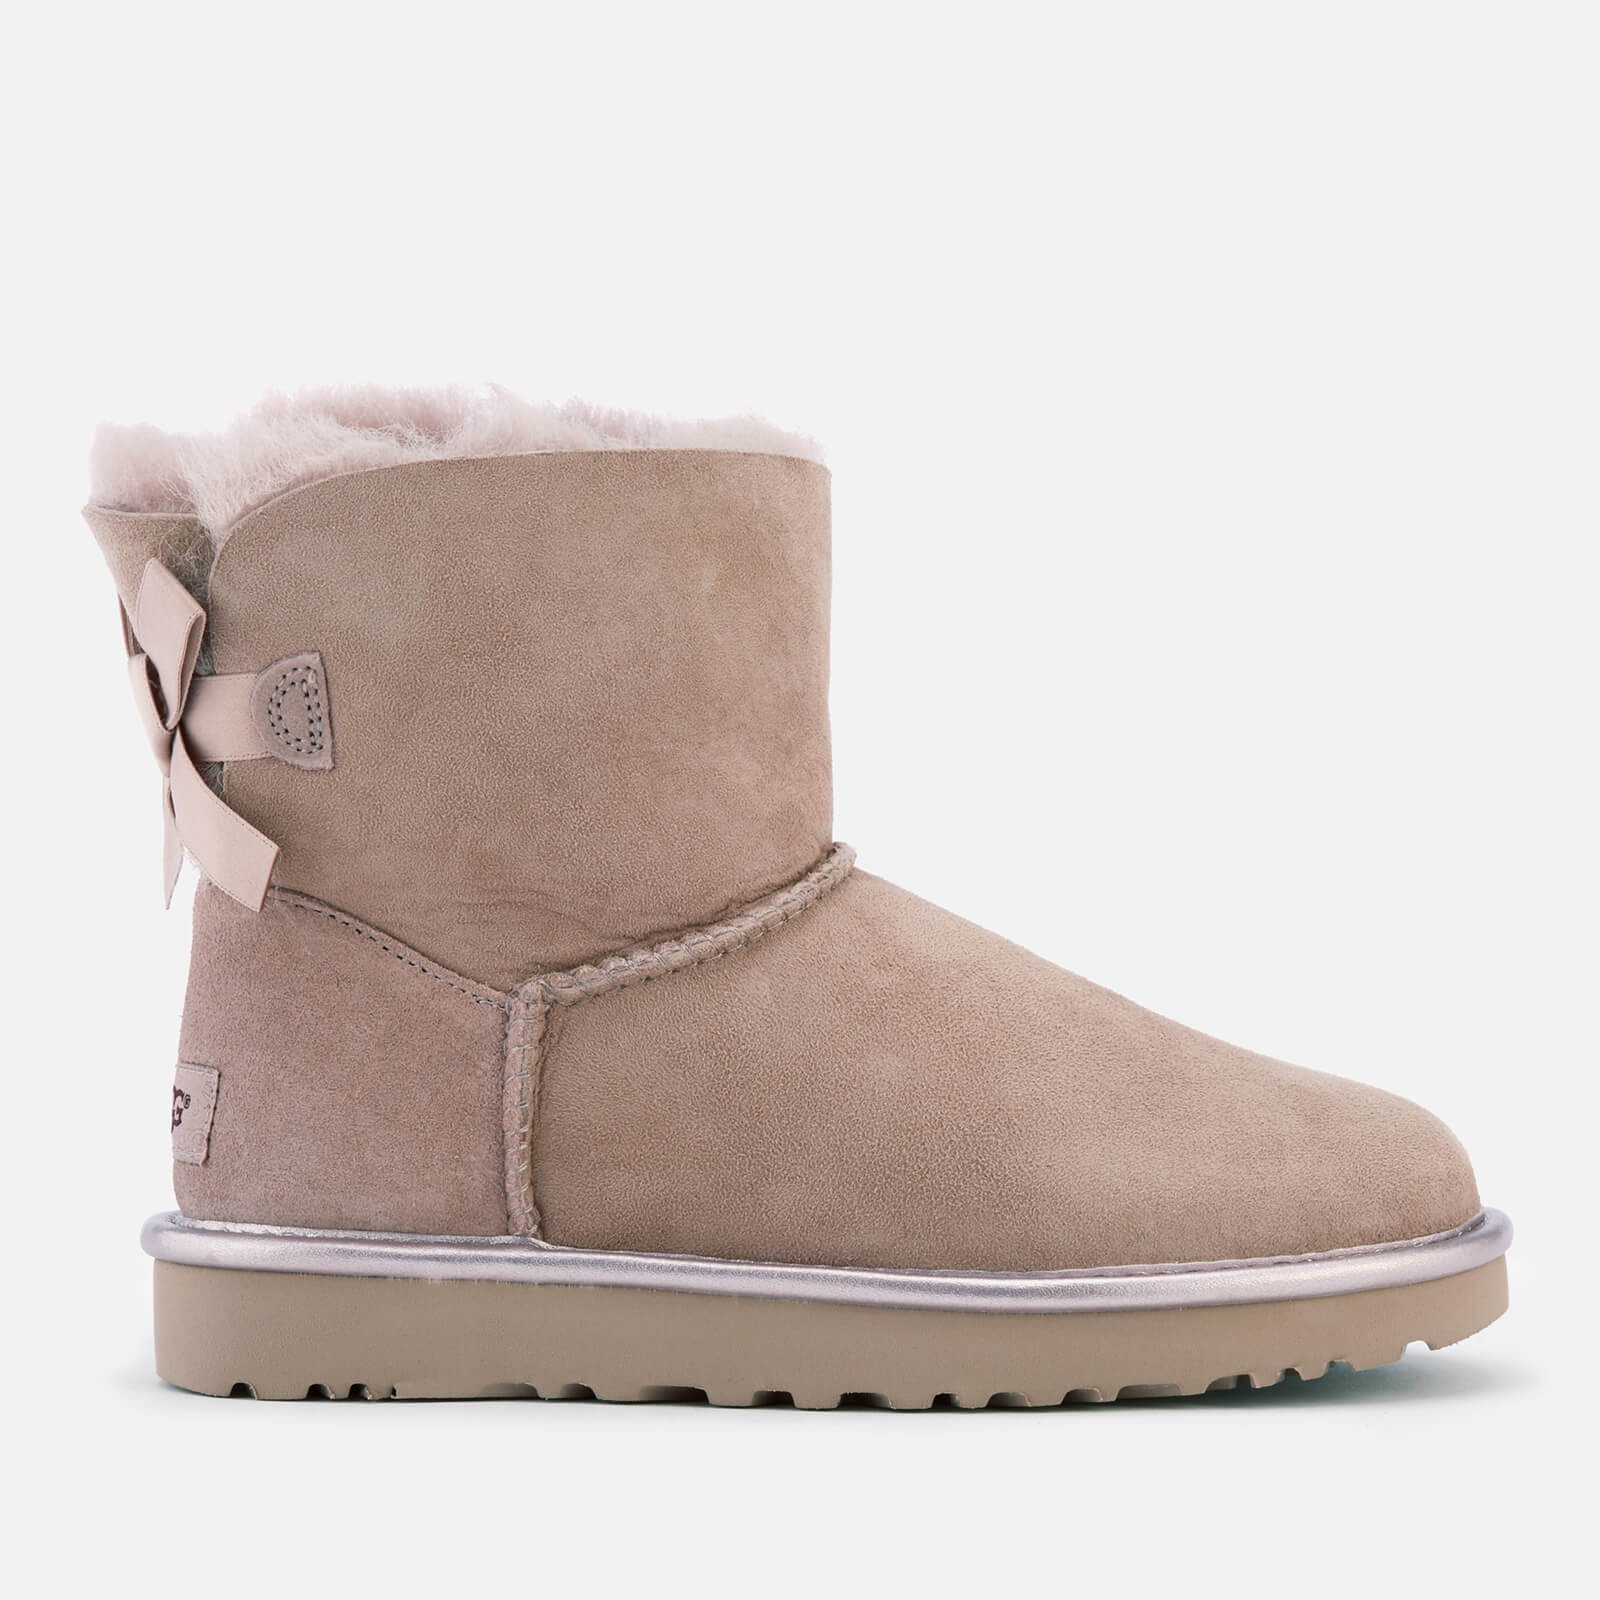 e05084281 UGG Women's Mini Bailey Bow II Metallic Sheepskin Boots - Dusk Womens  Footwear | TheHut.com